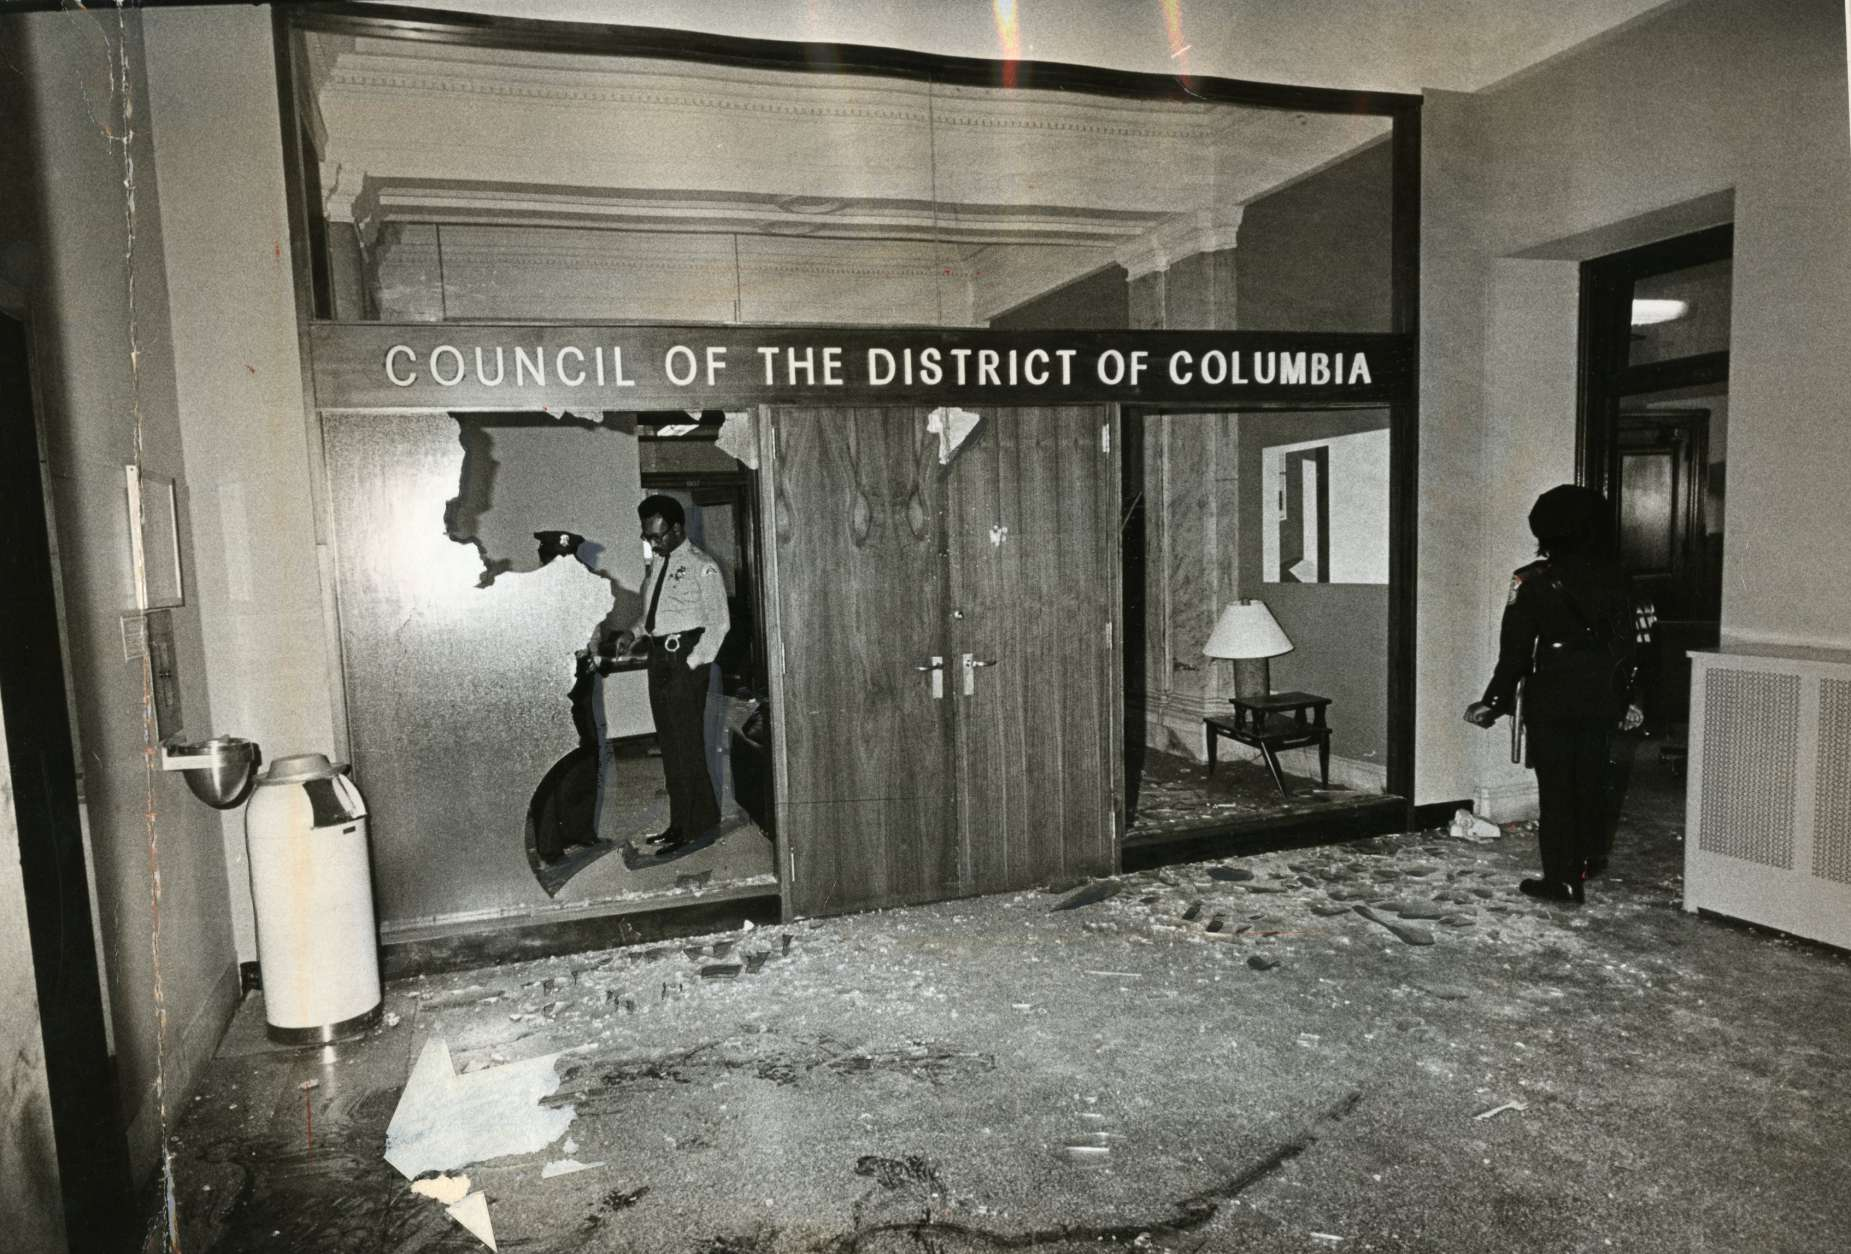 Aftermath of the Hanafi Siege, seen in an image shared as part of the D.C. Council's new photo exhibit in commemoration of the 40th anniversary of the siege. (Courtesy D.C. Council)